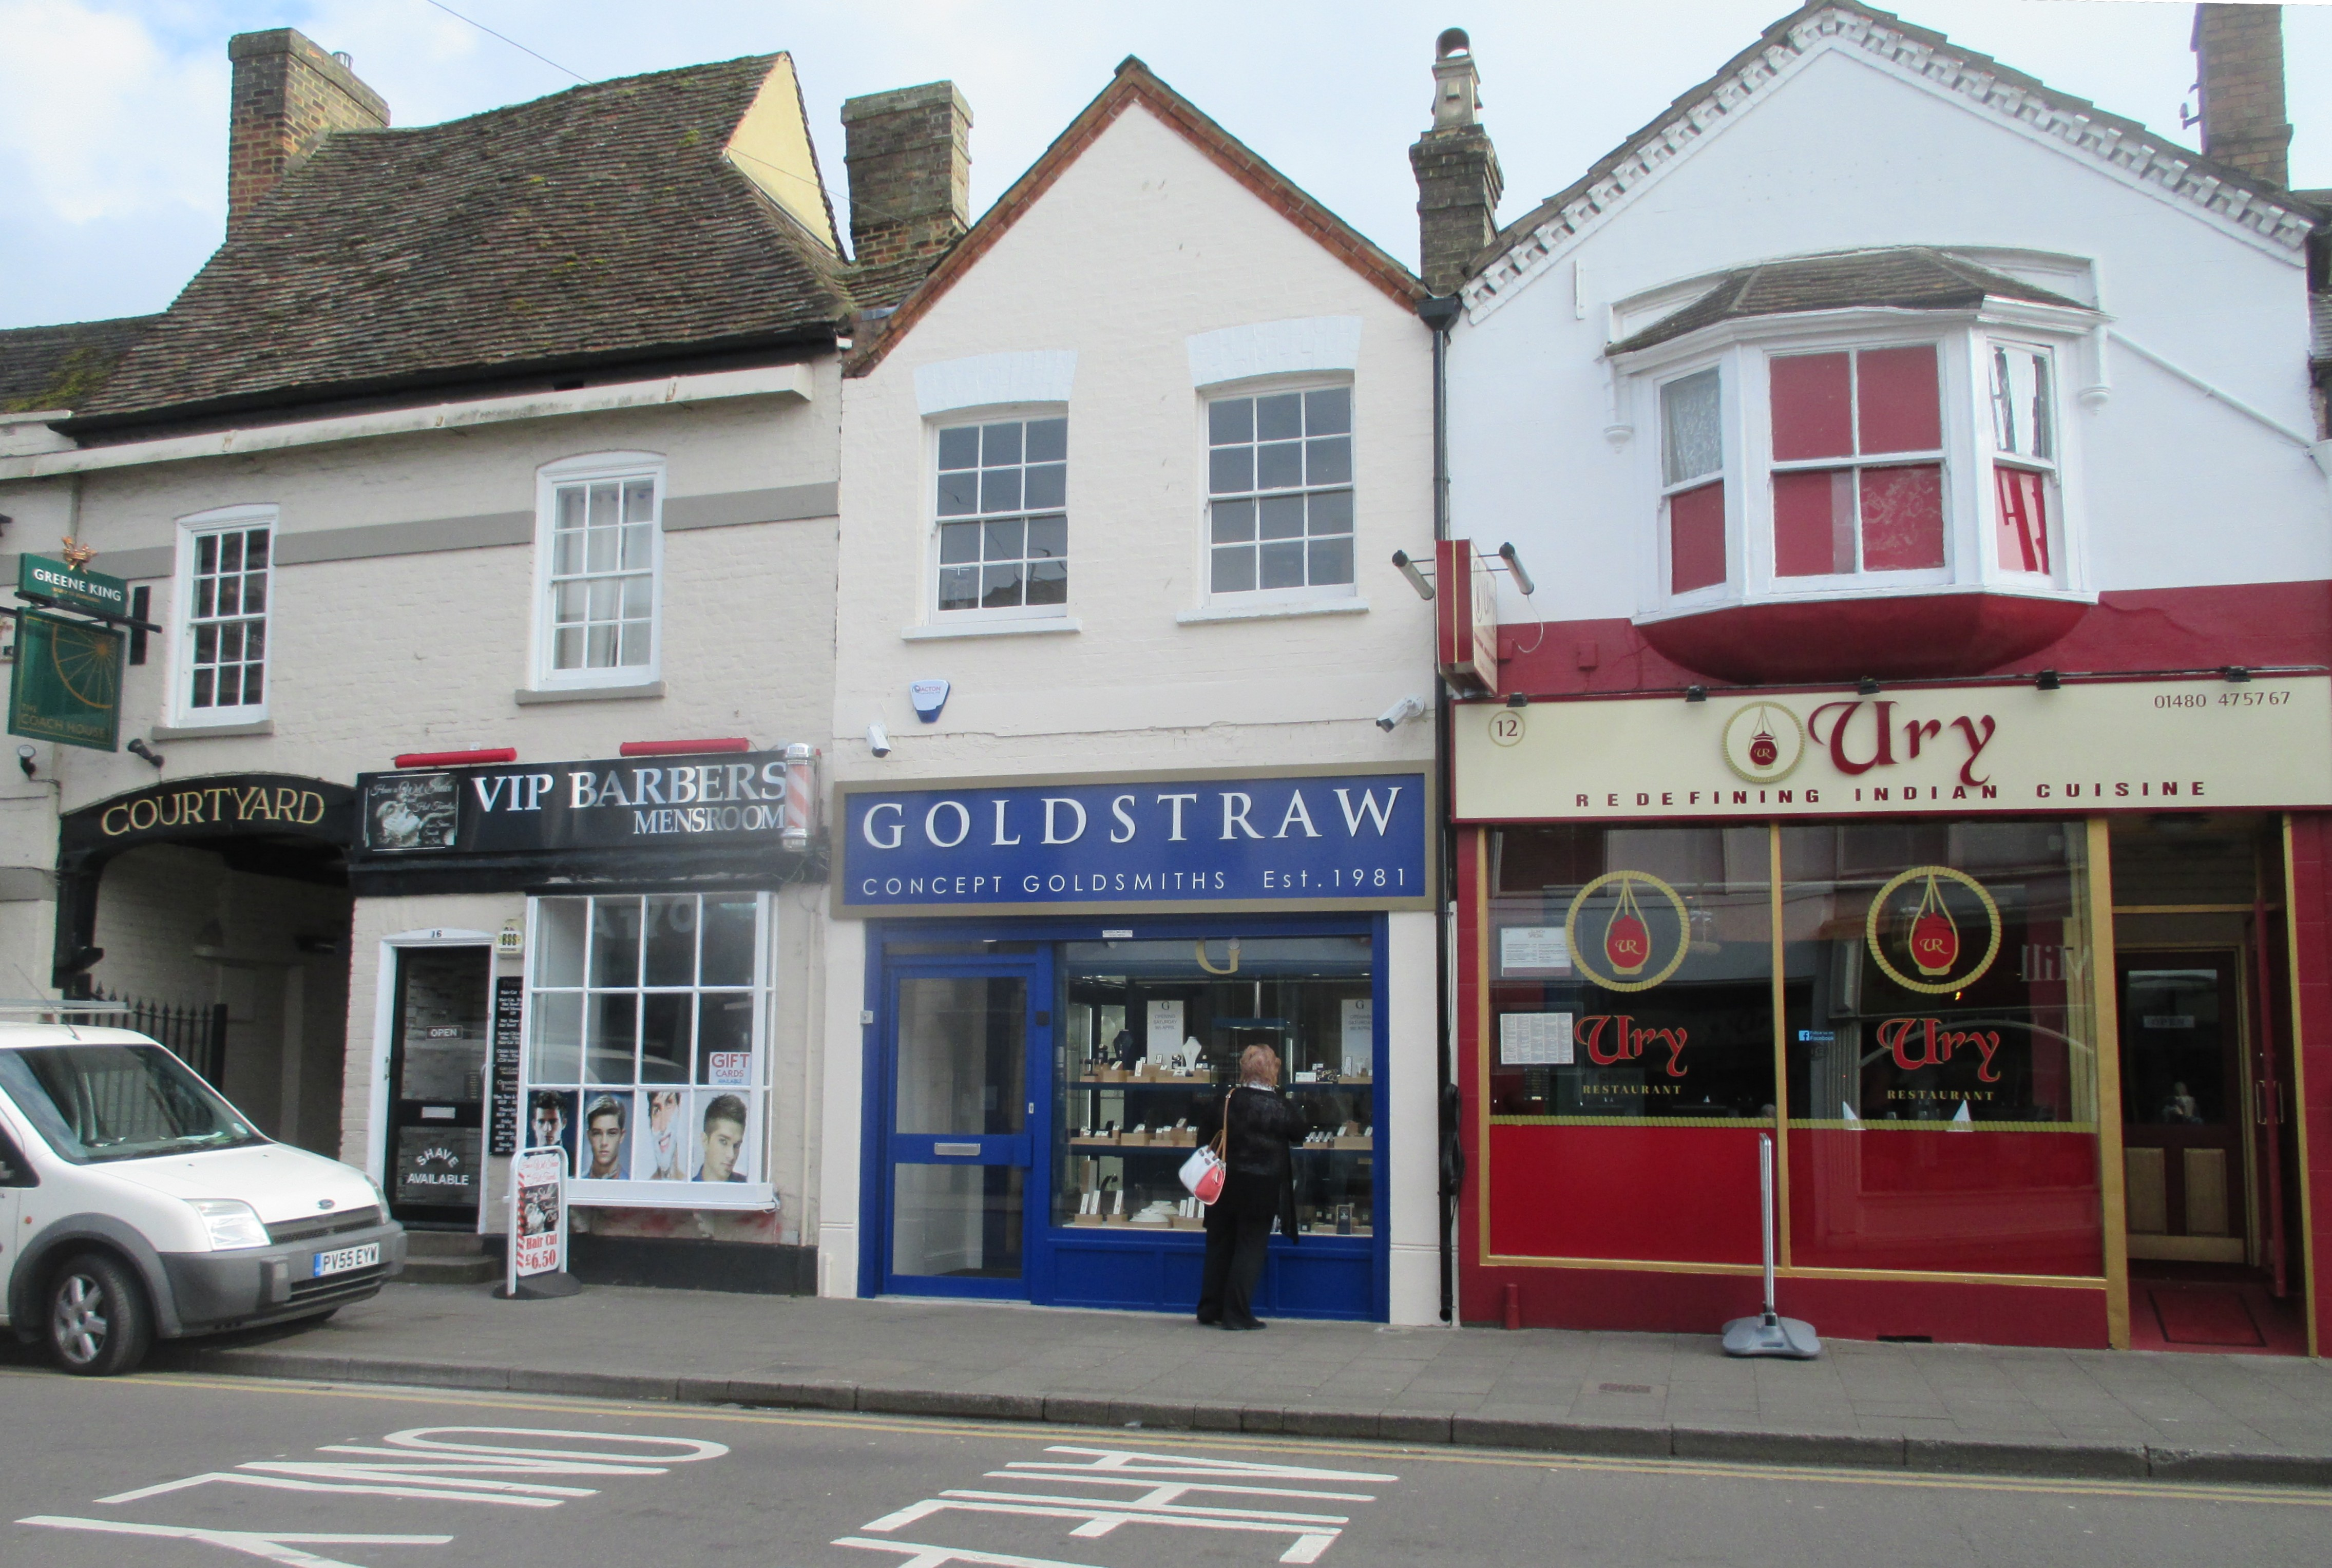 Vip Barbers Goldstraw Jewellers And Ury Indian Restaurant